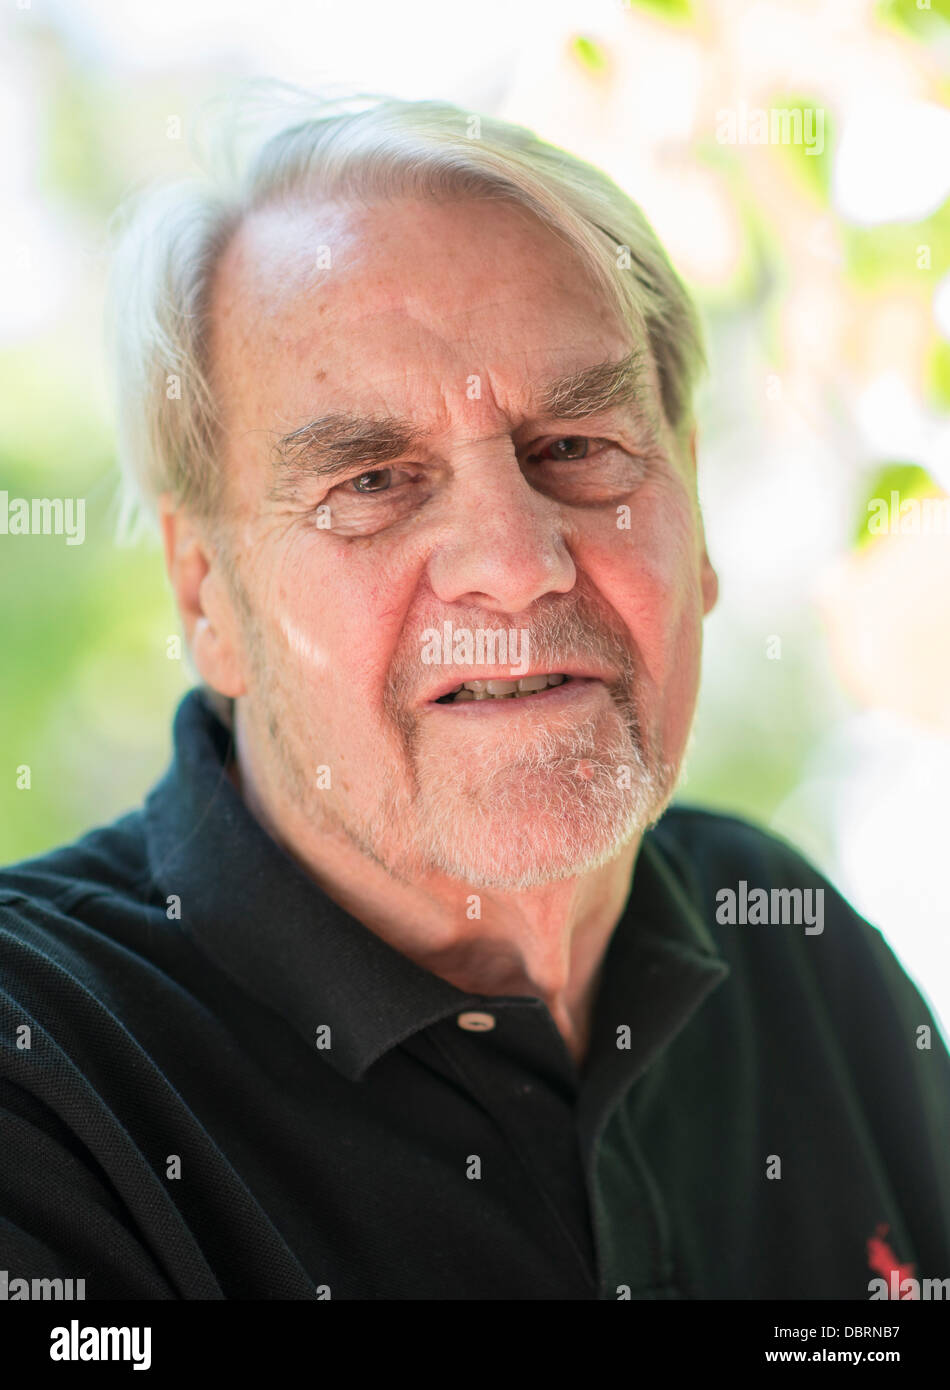 Journalist and publicist Gerd Ruge poses for photographers in Munich, Germany, 19 July 2013. Photo: MARC MUELLER - Stock Image